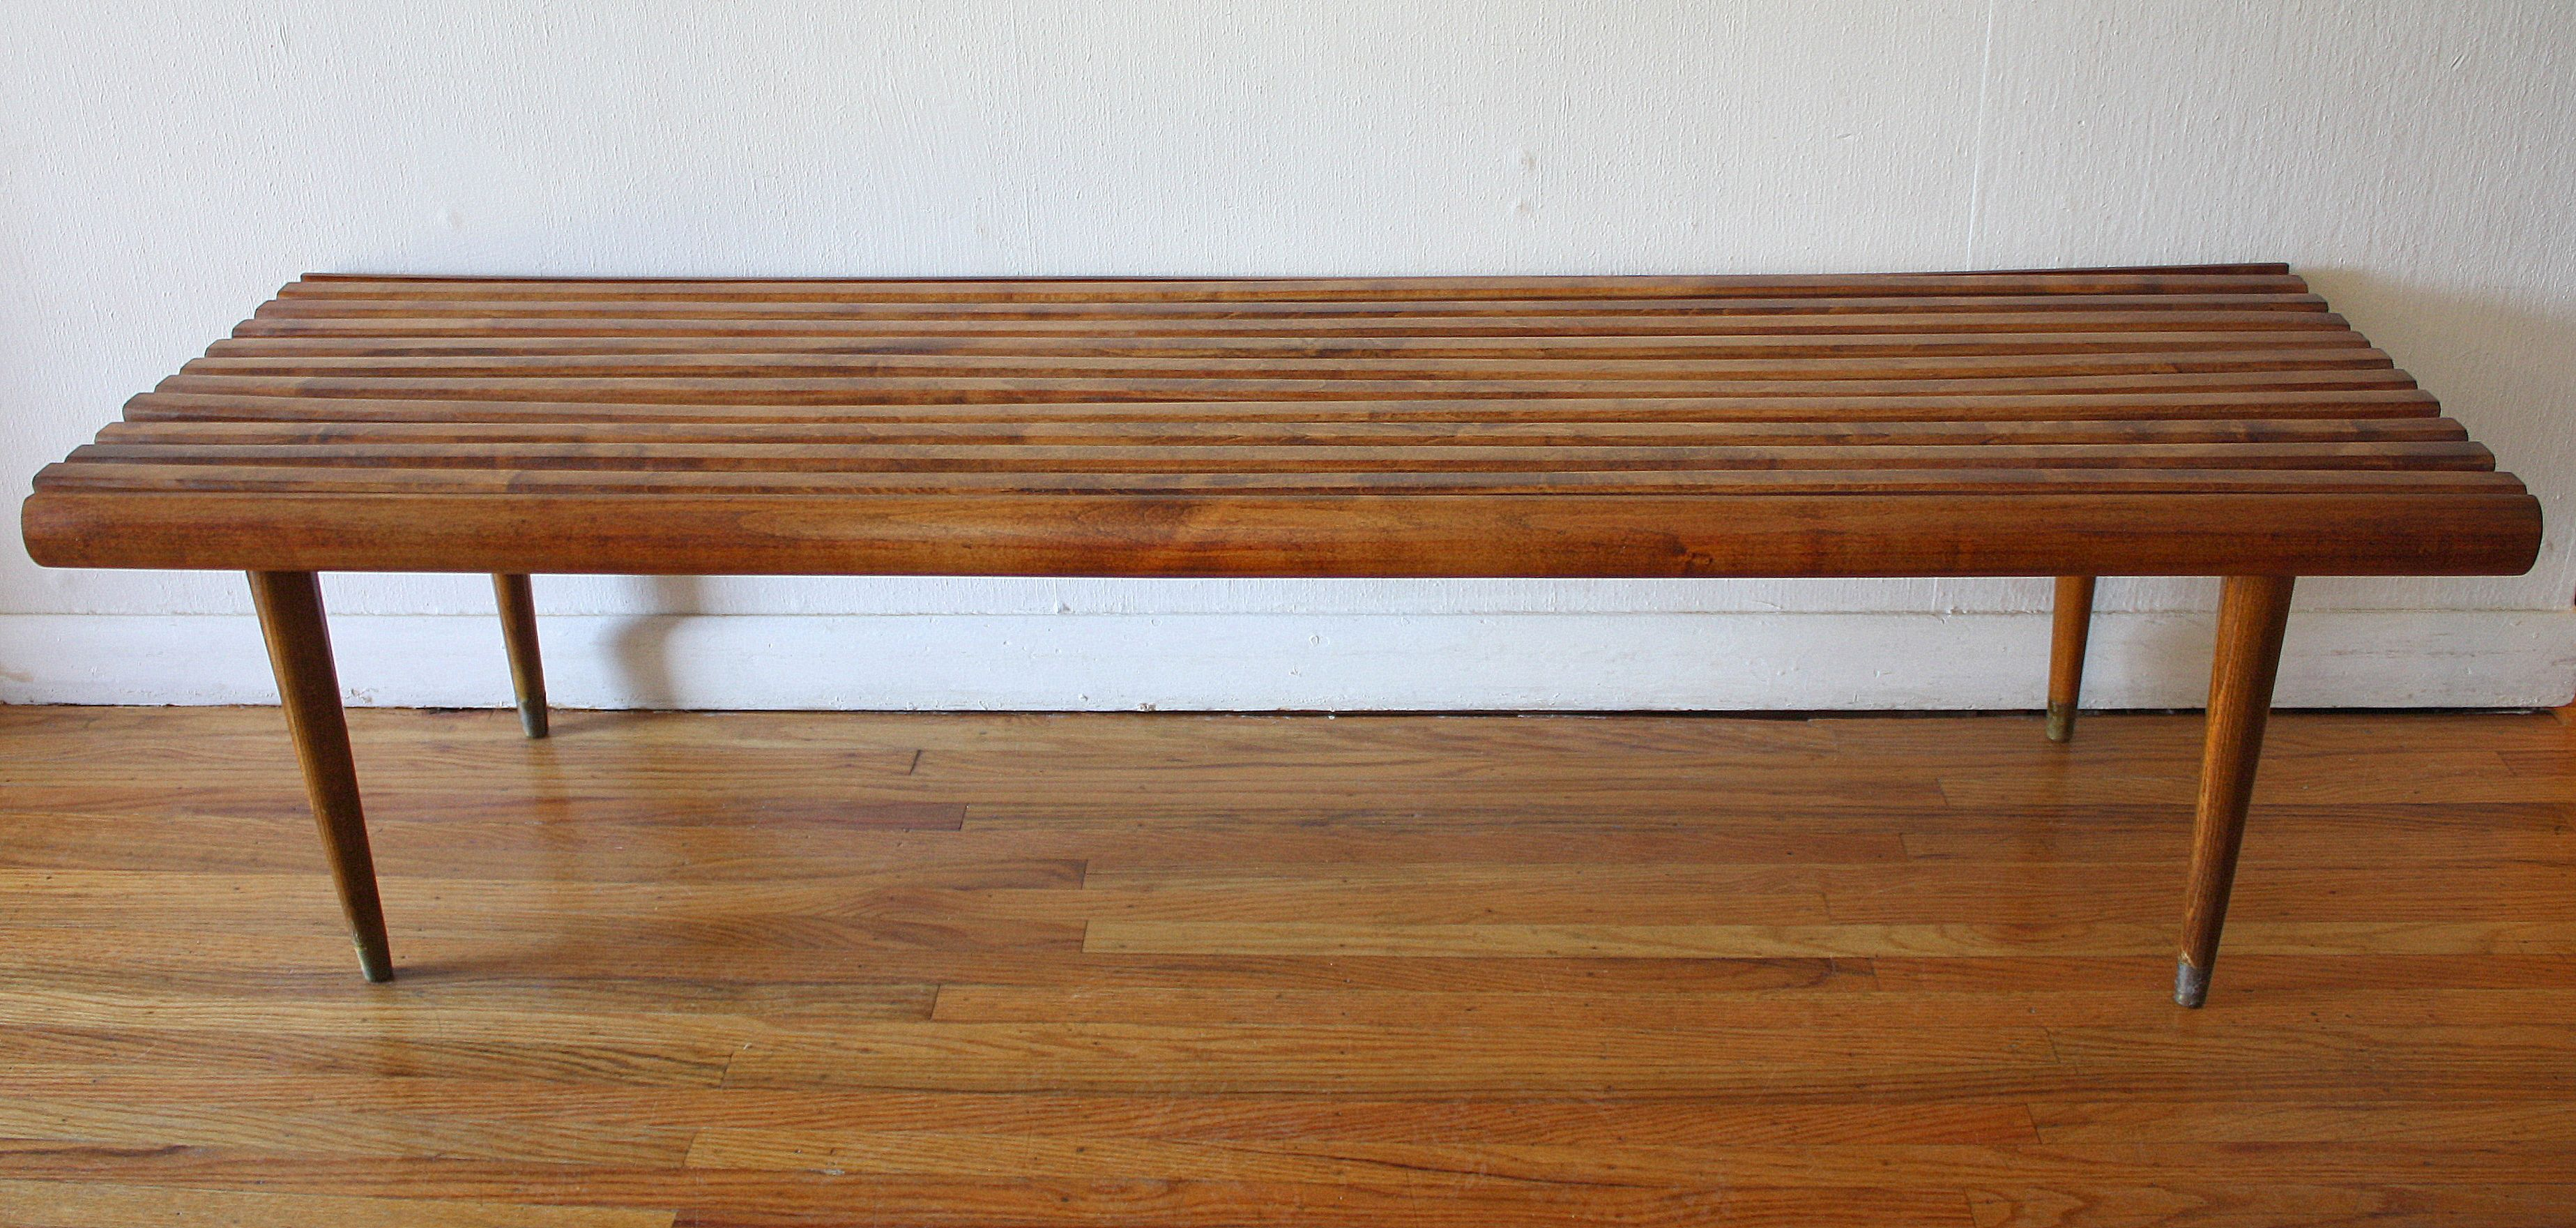 Mid Century Modern Slatted Bench Coffee Table Coffee Table Midcentury Modern Dining Table Modern Dining Table [ 1761 x 3695 Pixel ]